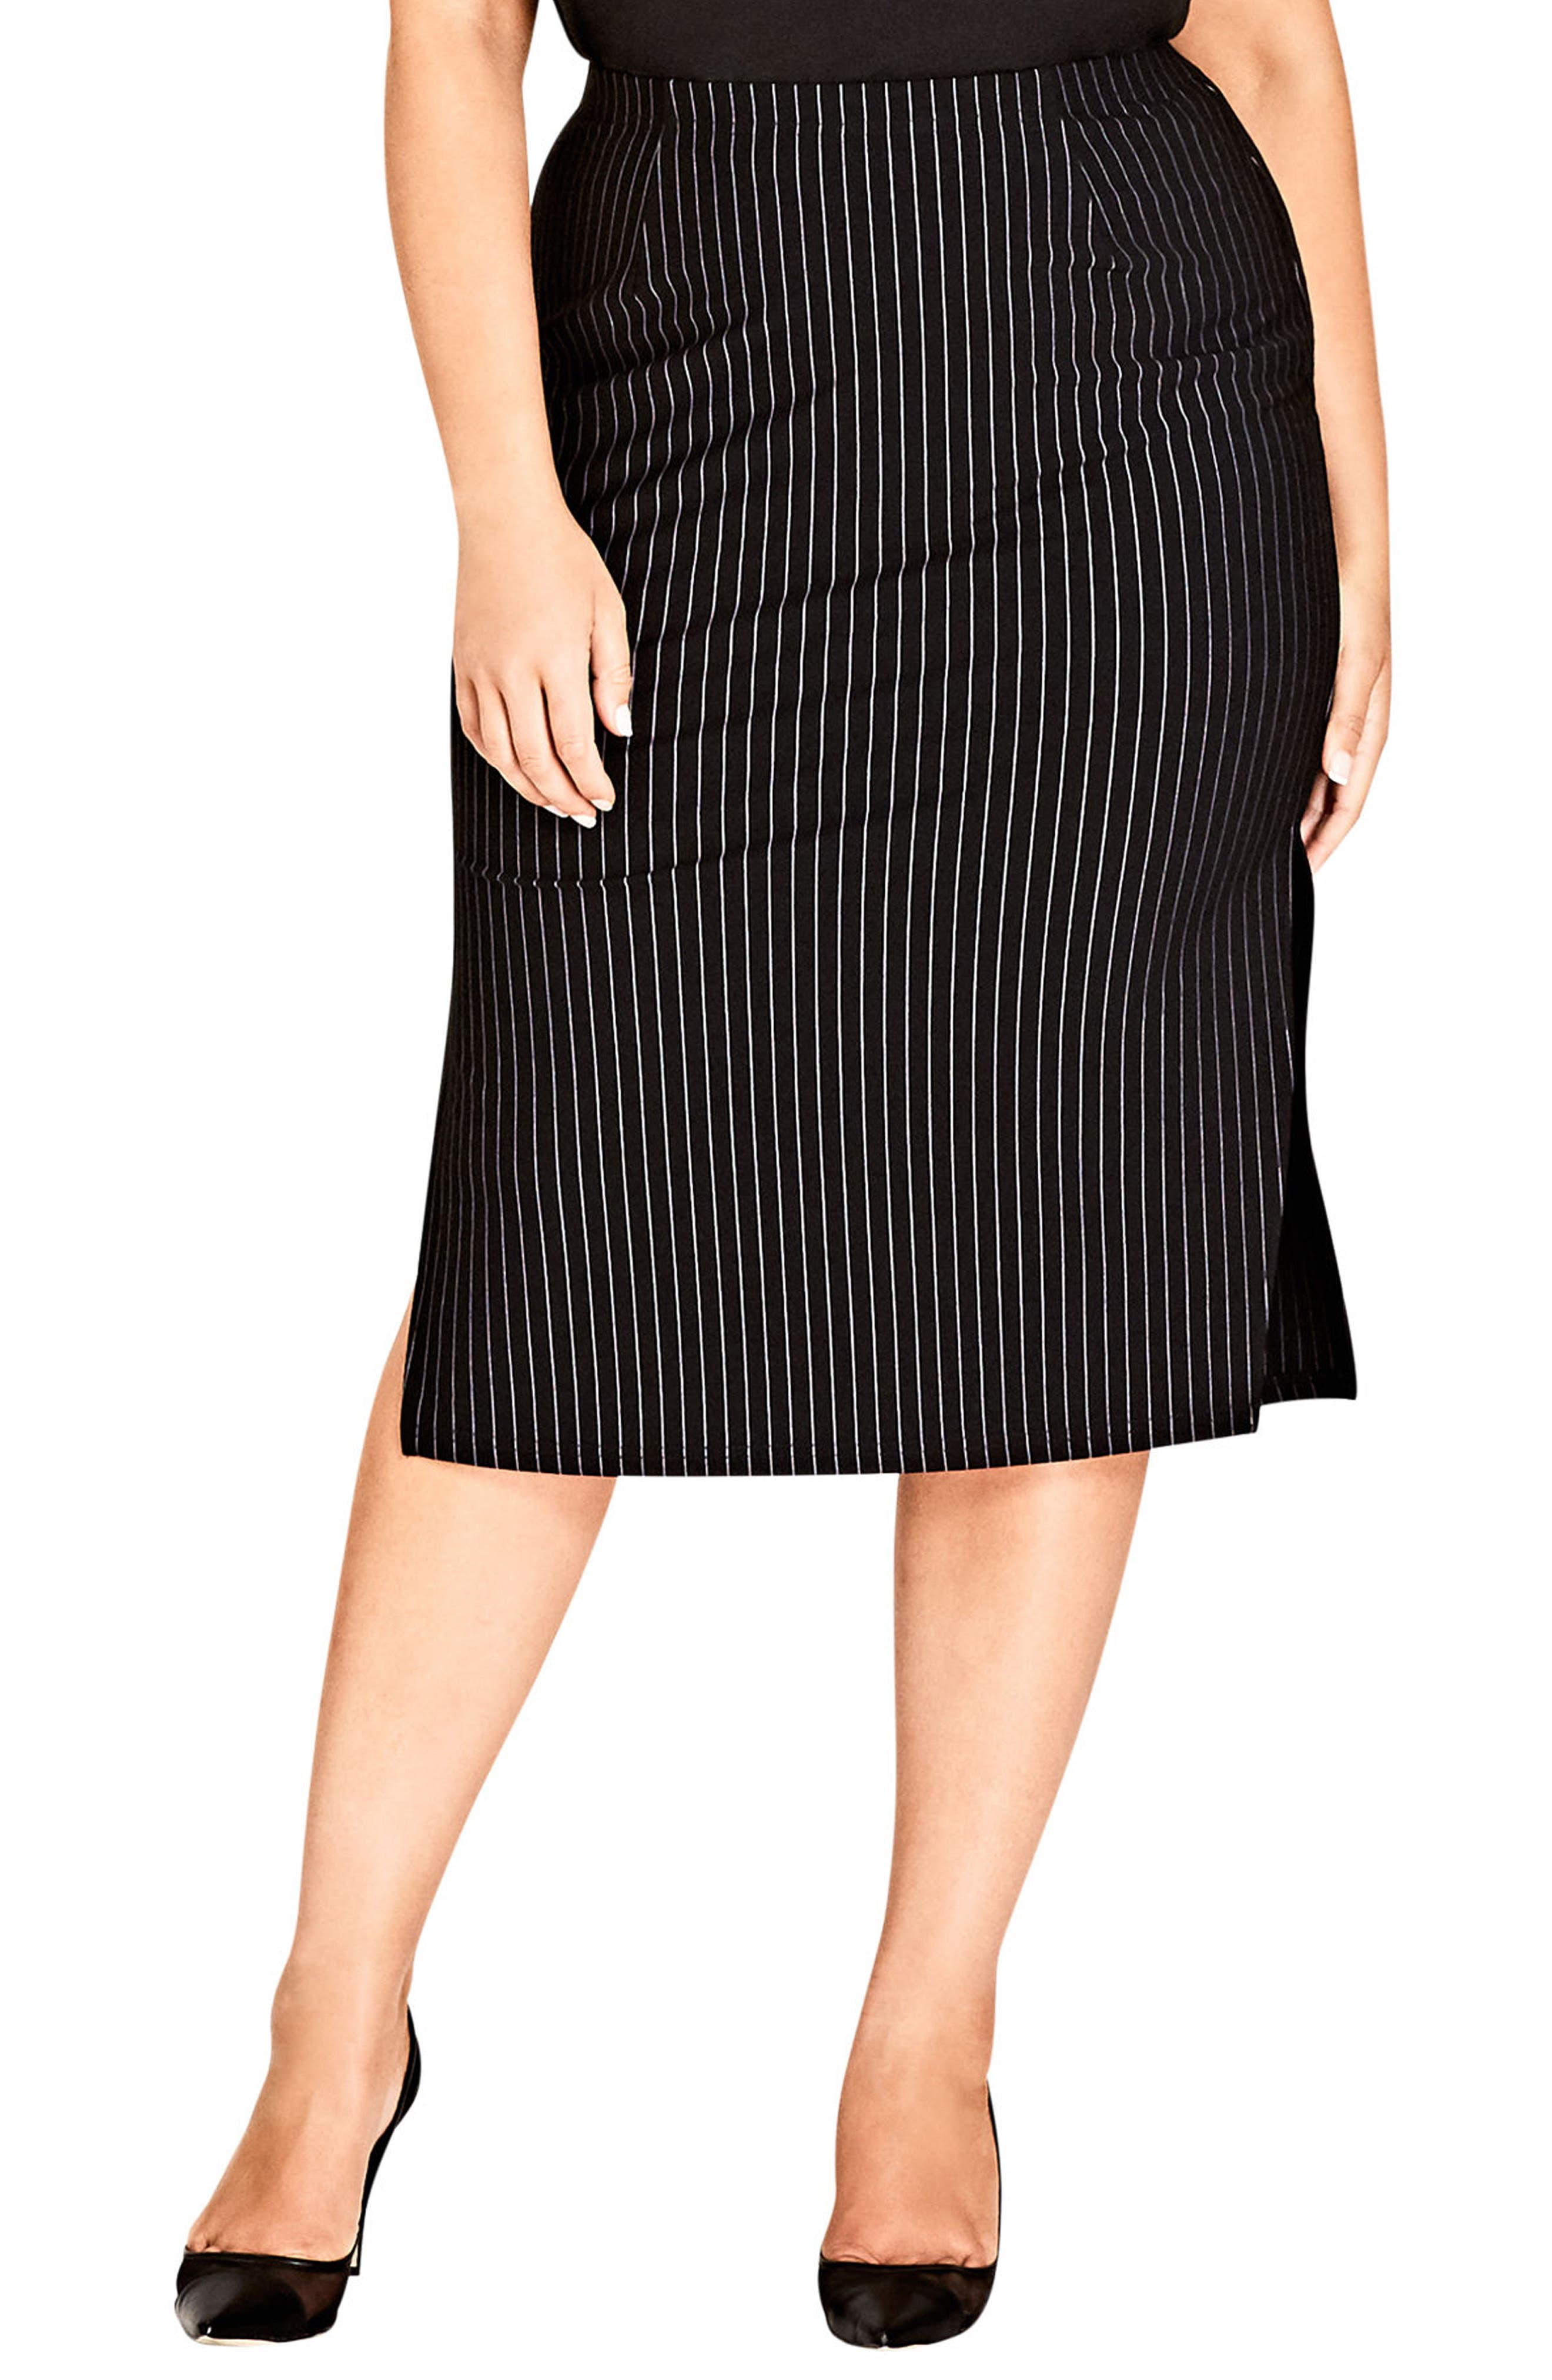 Chic City On Point Pencil skirt (Plus Size)